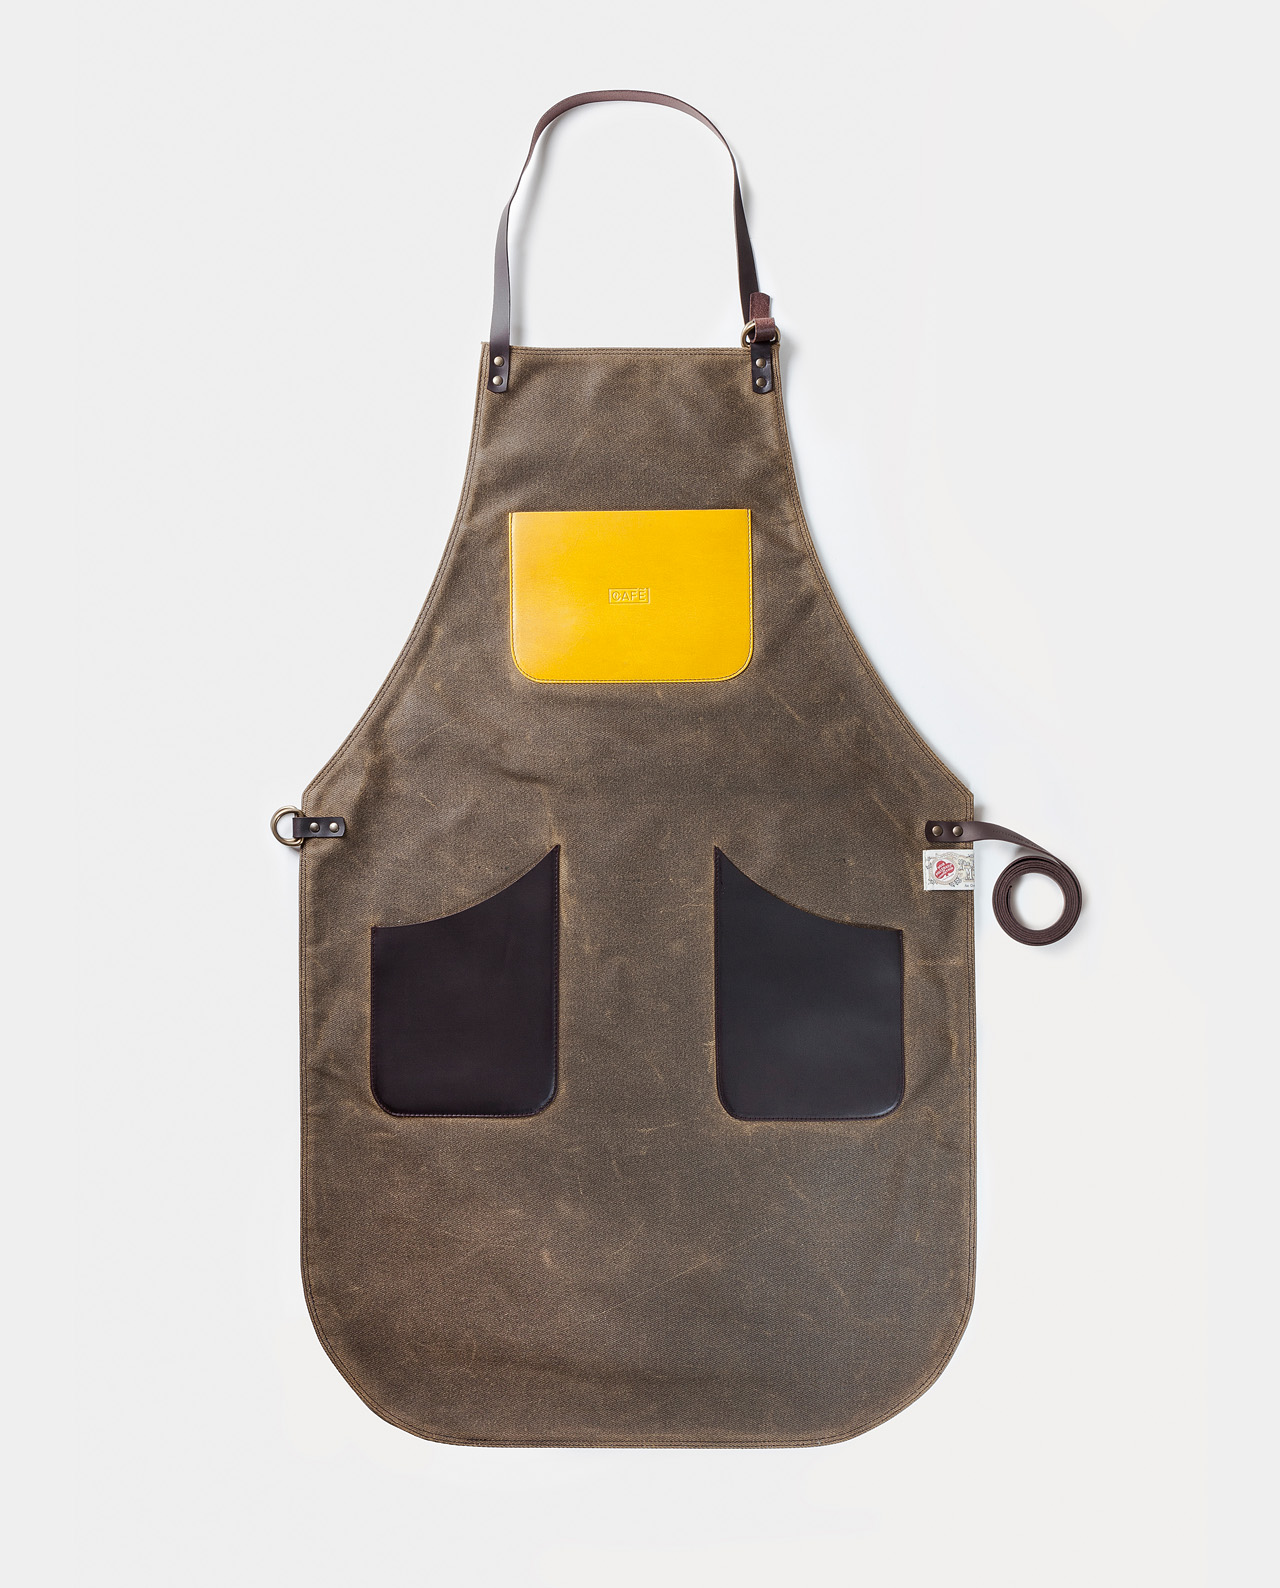 leather apron and canvas handcrafted in Spain